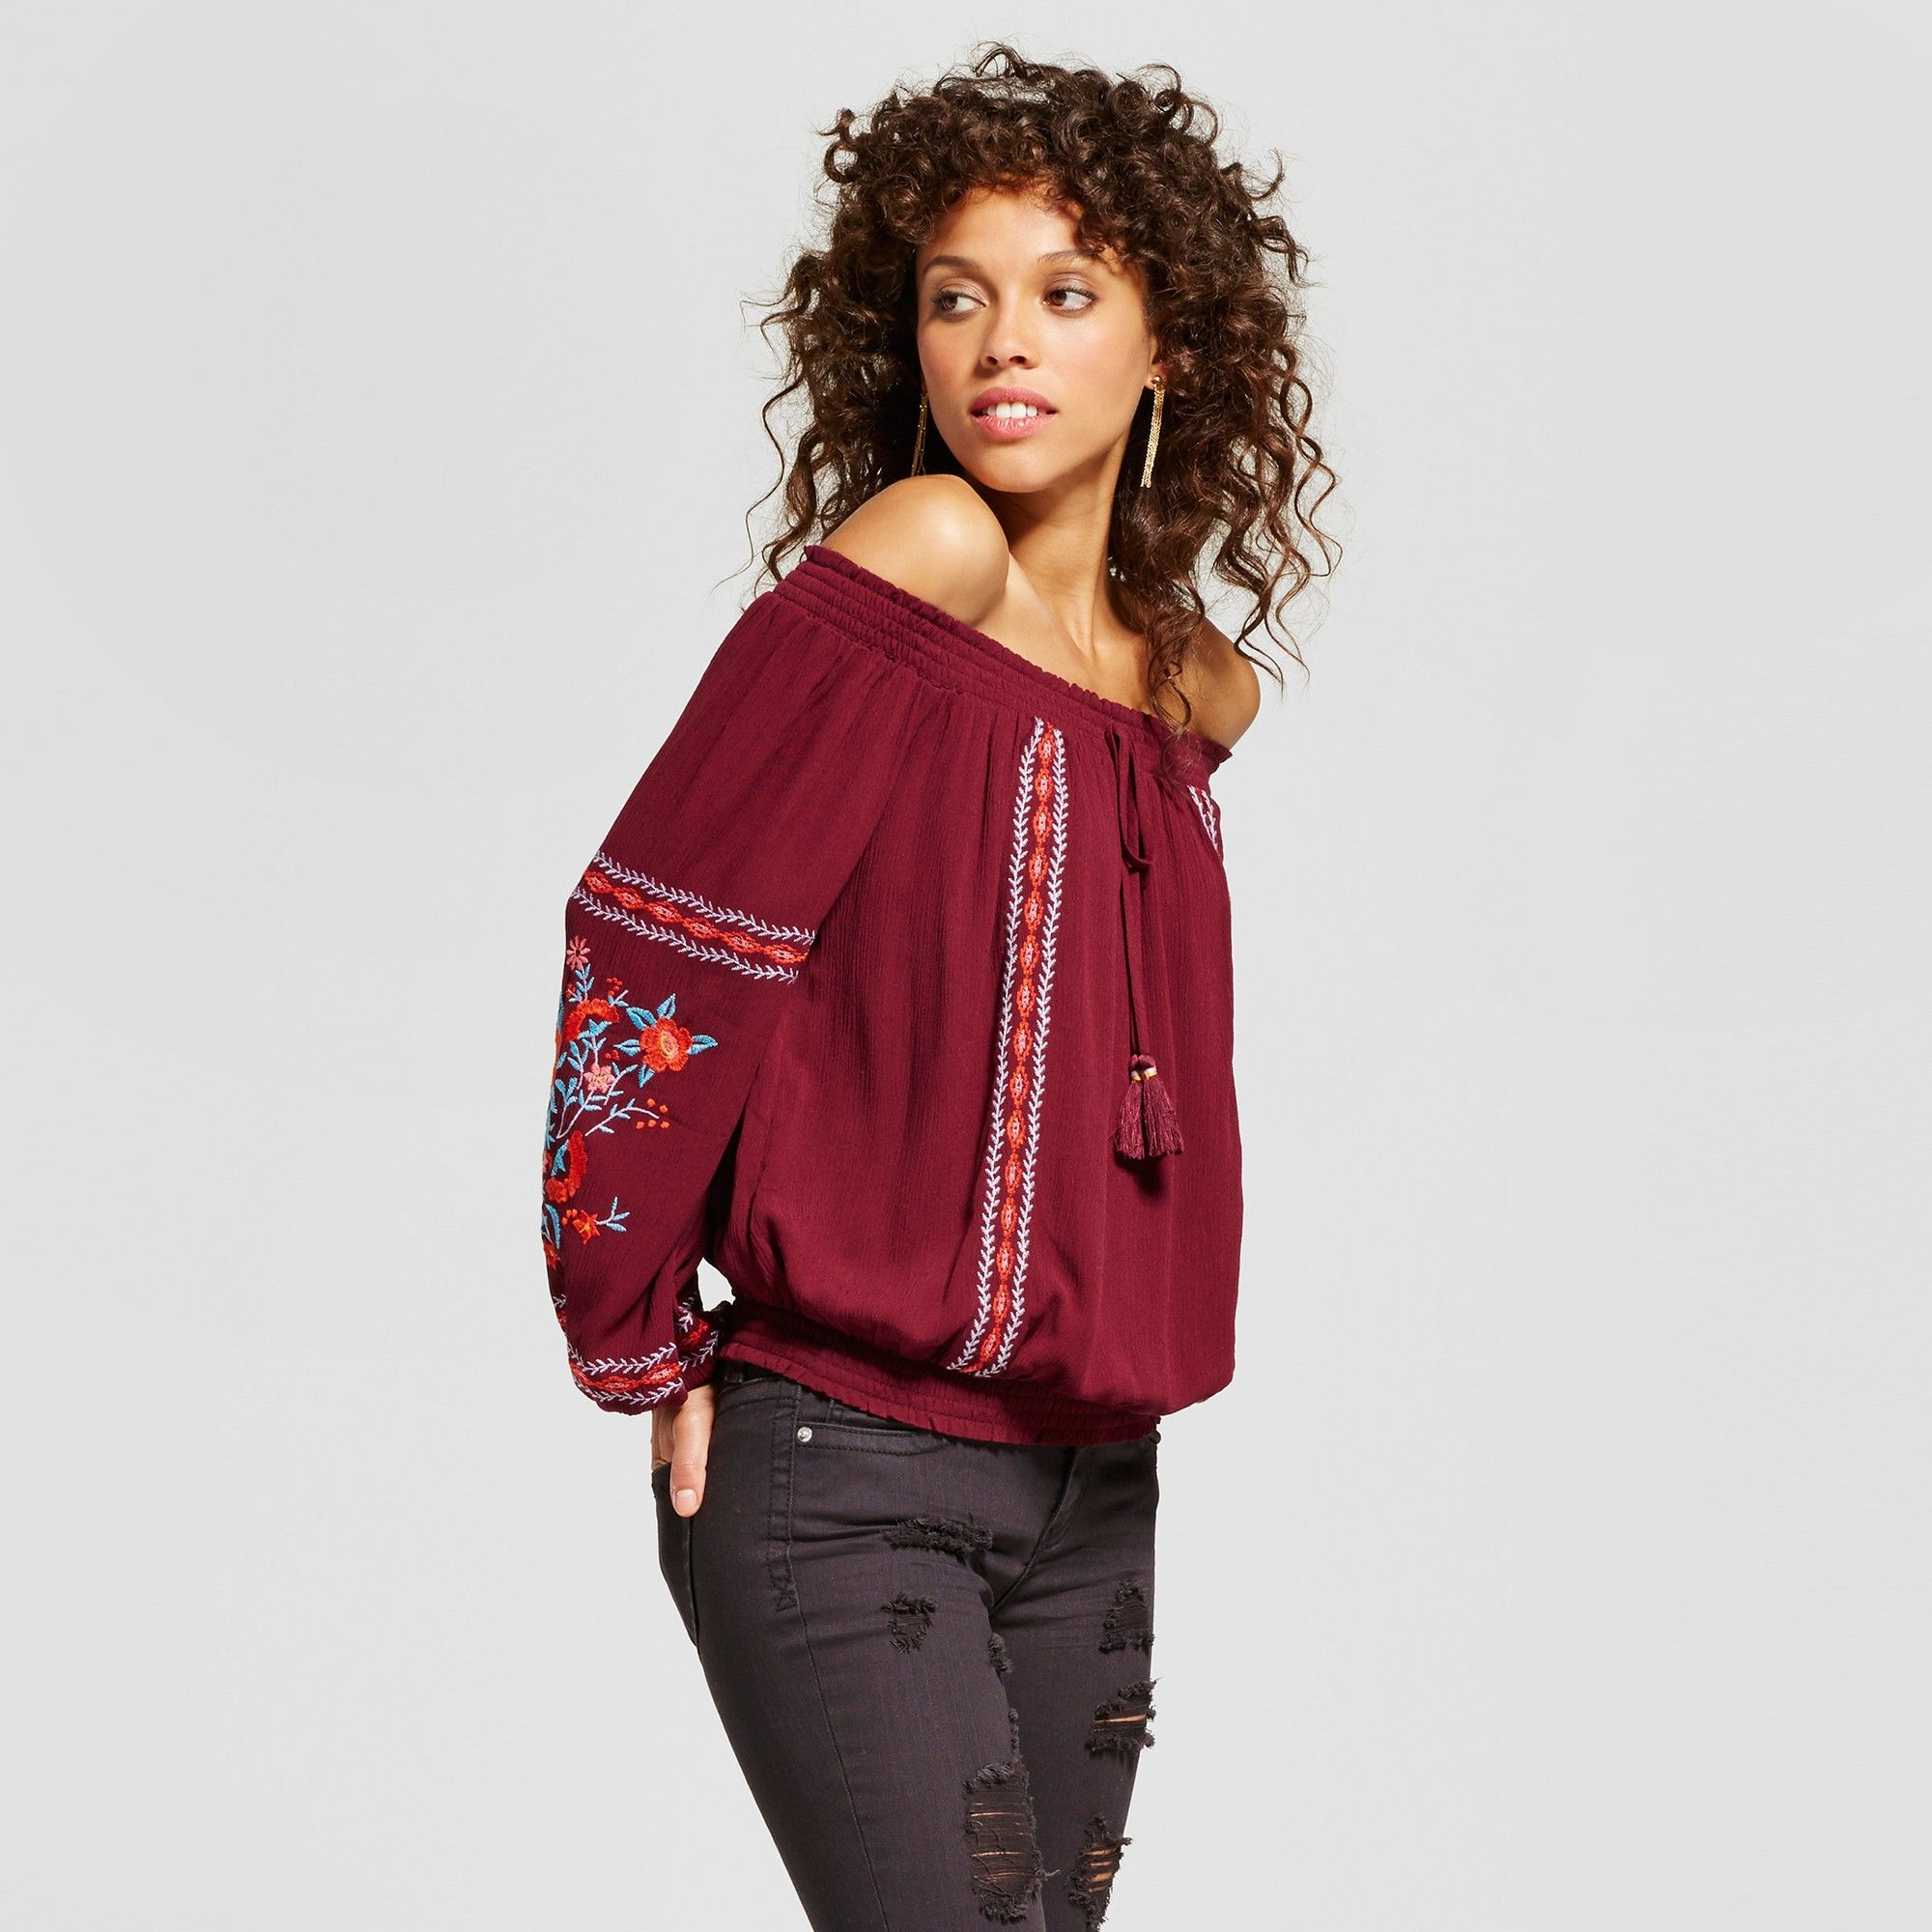 e22f7555b7d Women s Embroidered Smocked Off the Shoulder Top - Xhilaration (Juniors )  Berry (Pink) Xxl